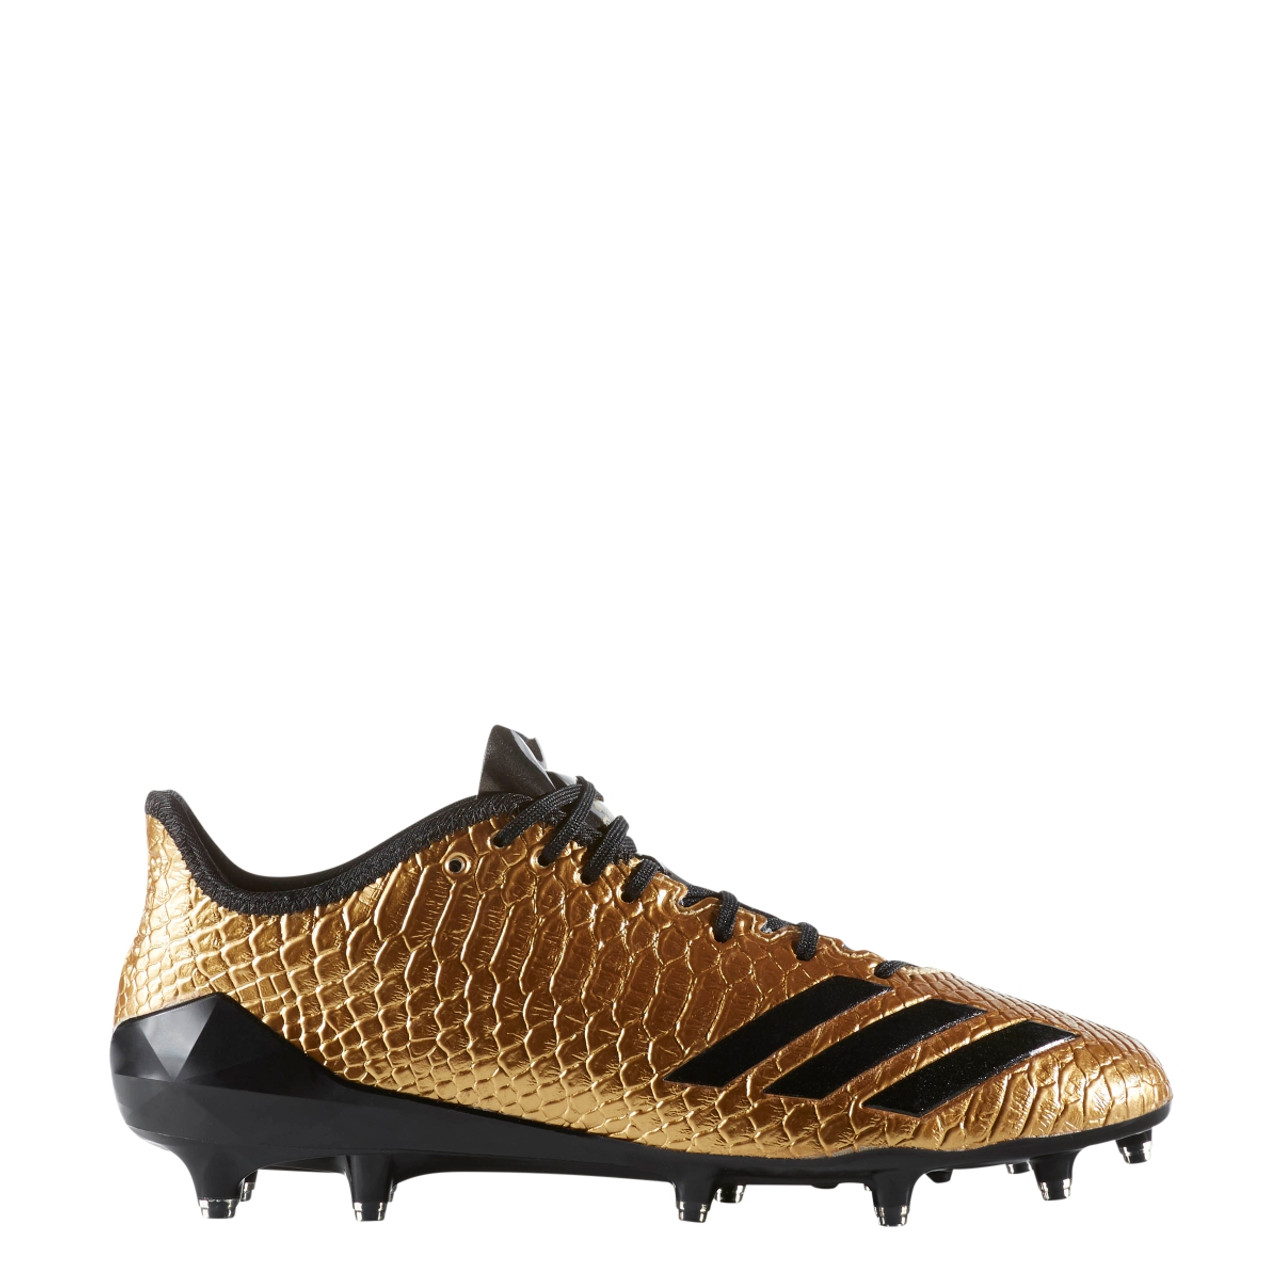 best sneakers 43bd7 2b5ef Mens Adidas Adizero 5-Star 6.0 GOLD Football Cleat - Sieverts Sporting  Goods